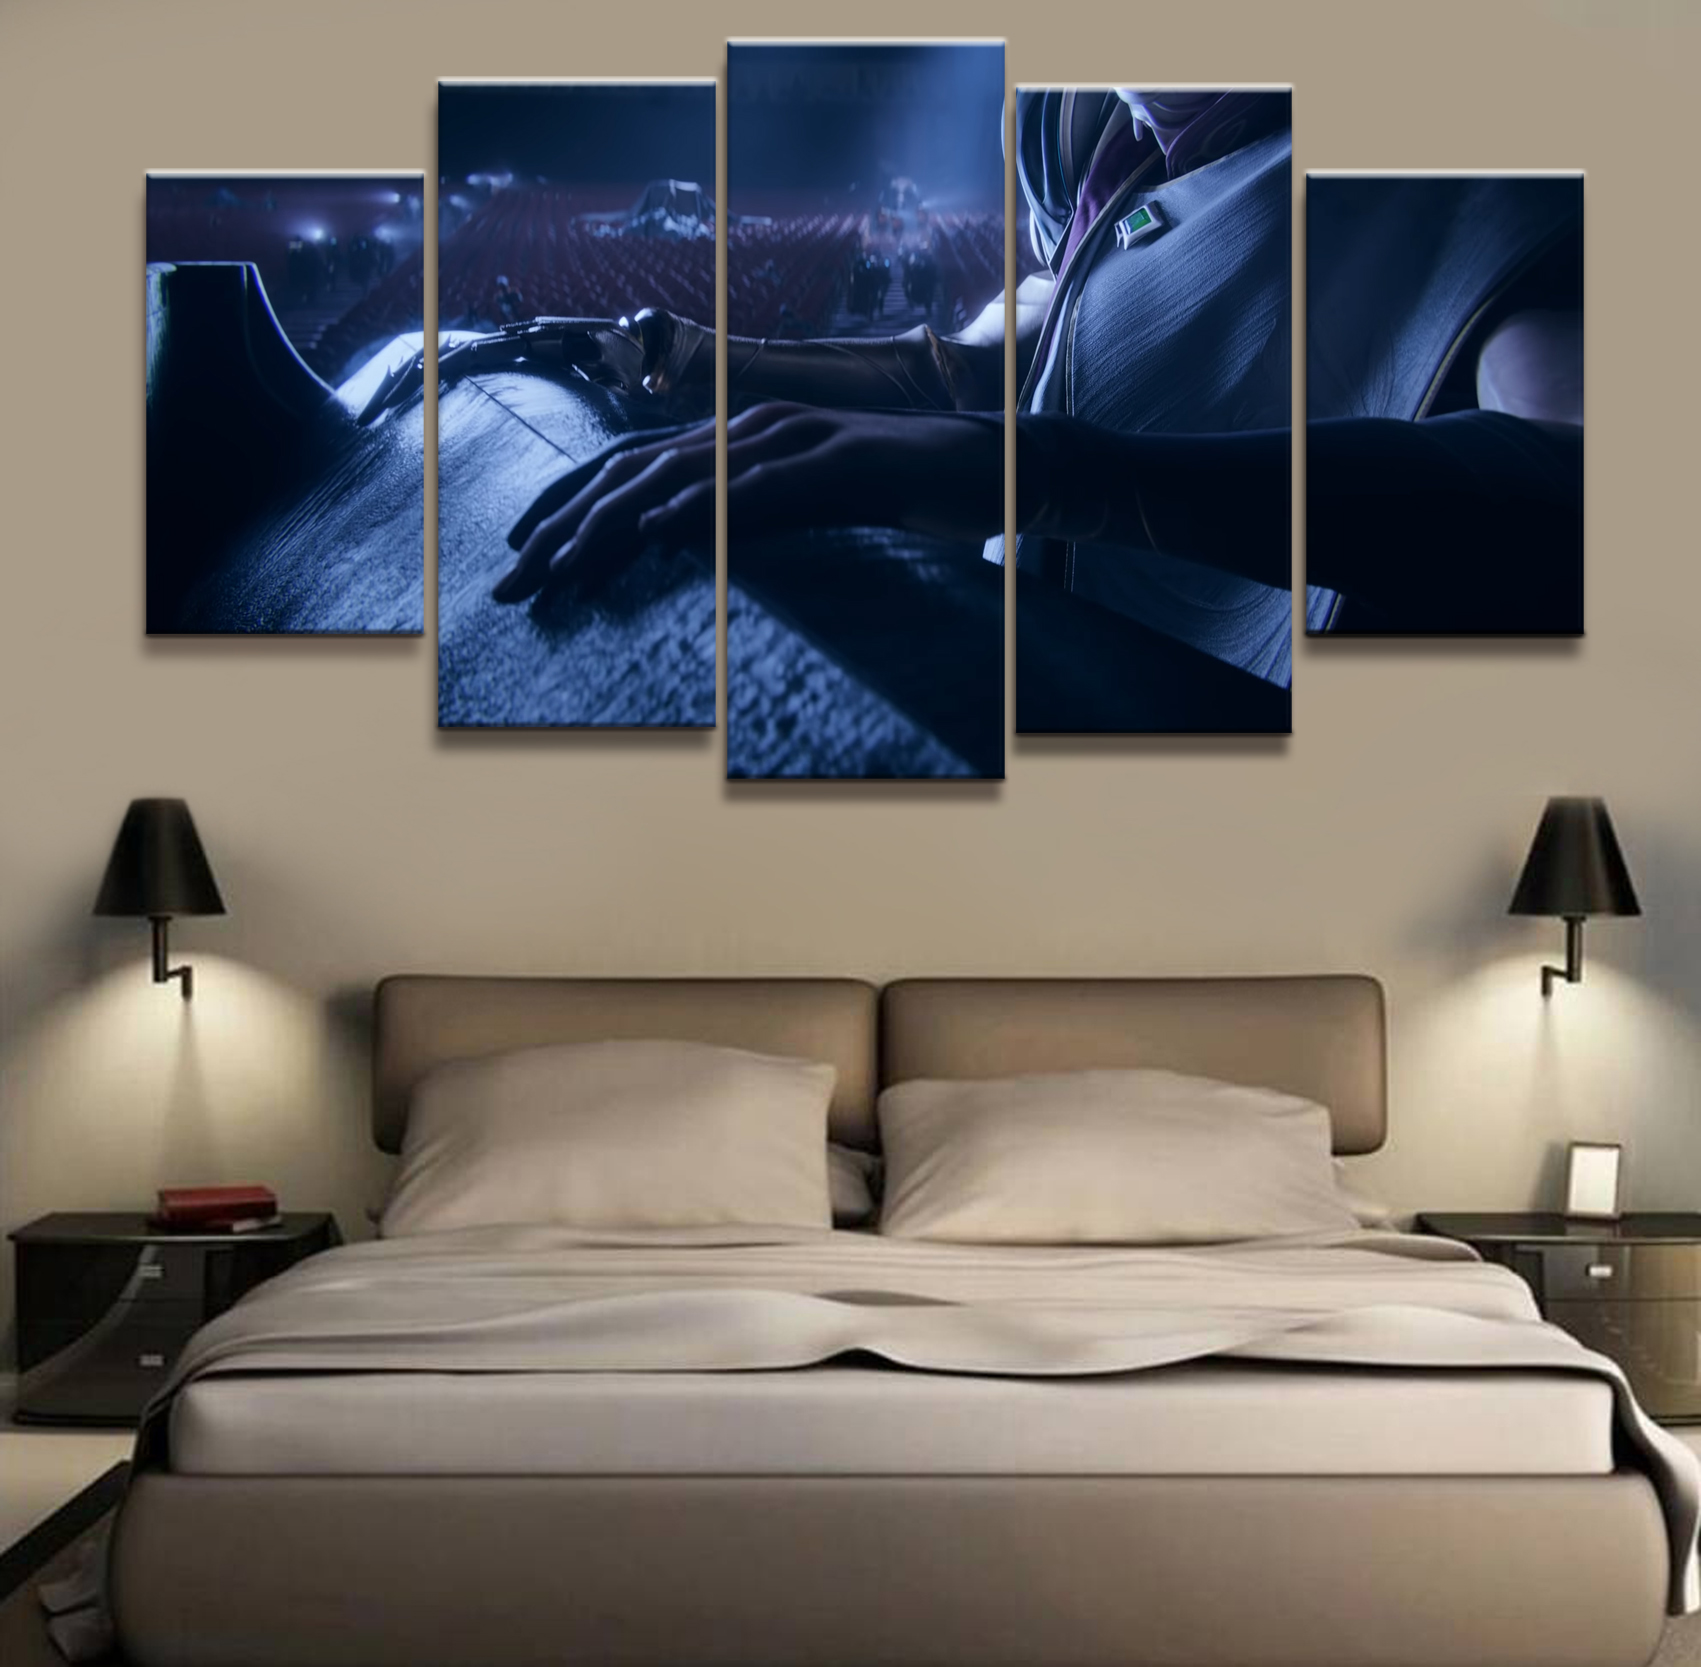 5 Panel Khada Jhin LOL League of Legends Game Canvas Printed Painting For Living Room Wall Art Decor HD Picture Works Poster in Painting Calligraphy from Home Garden